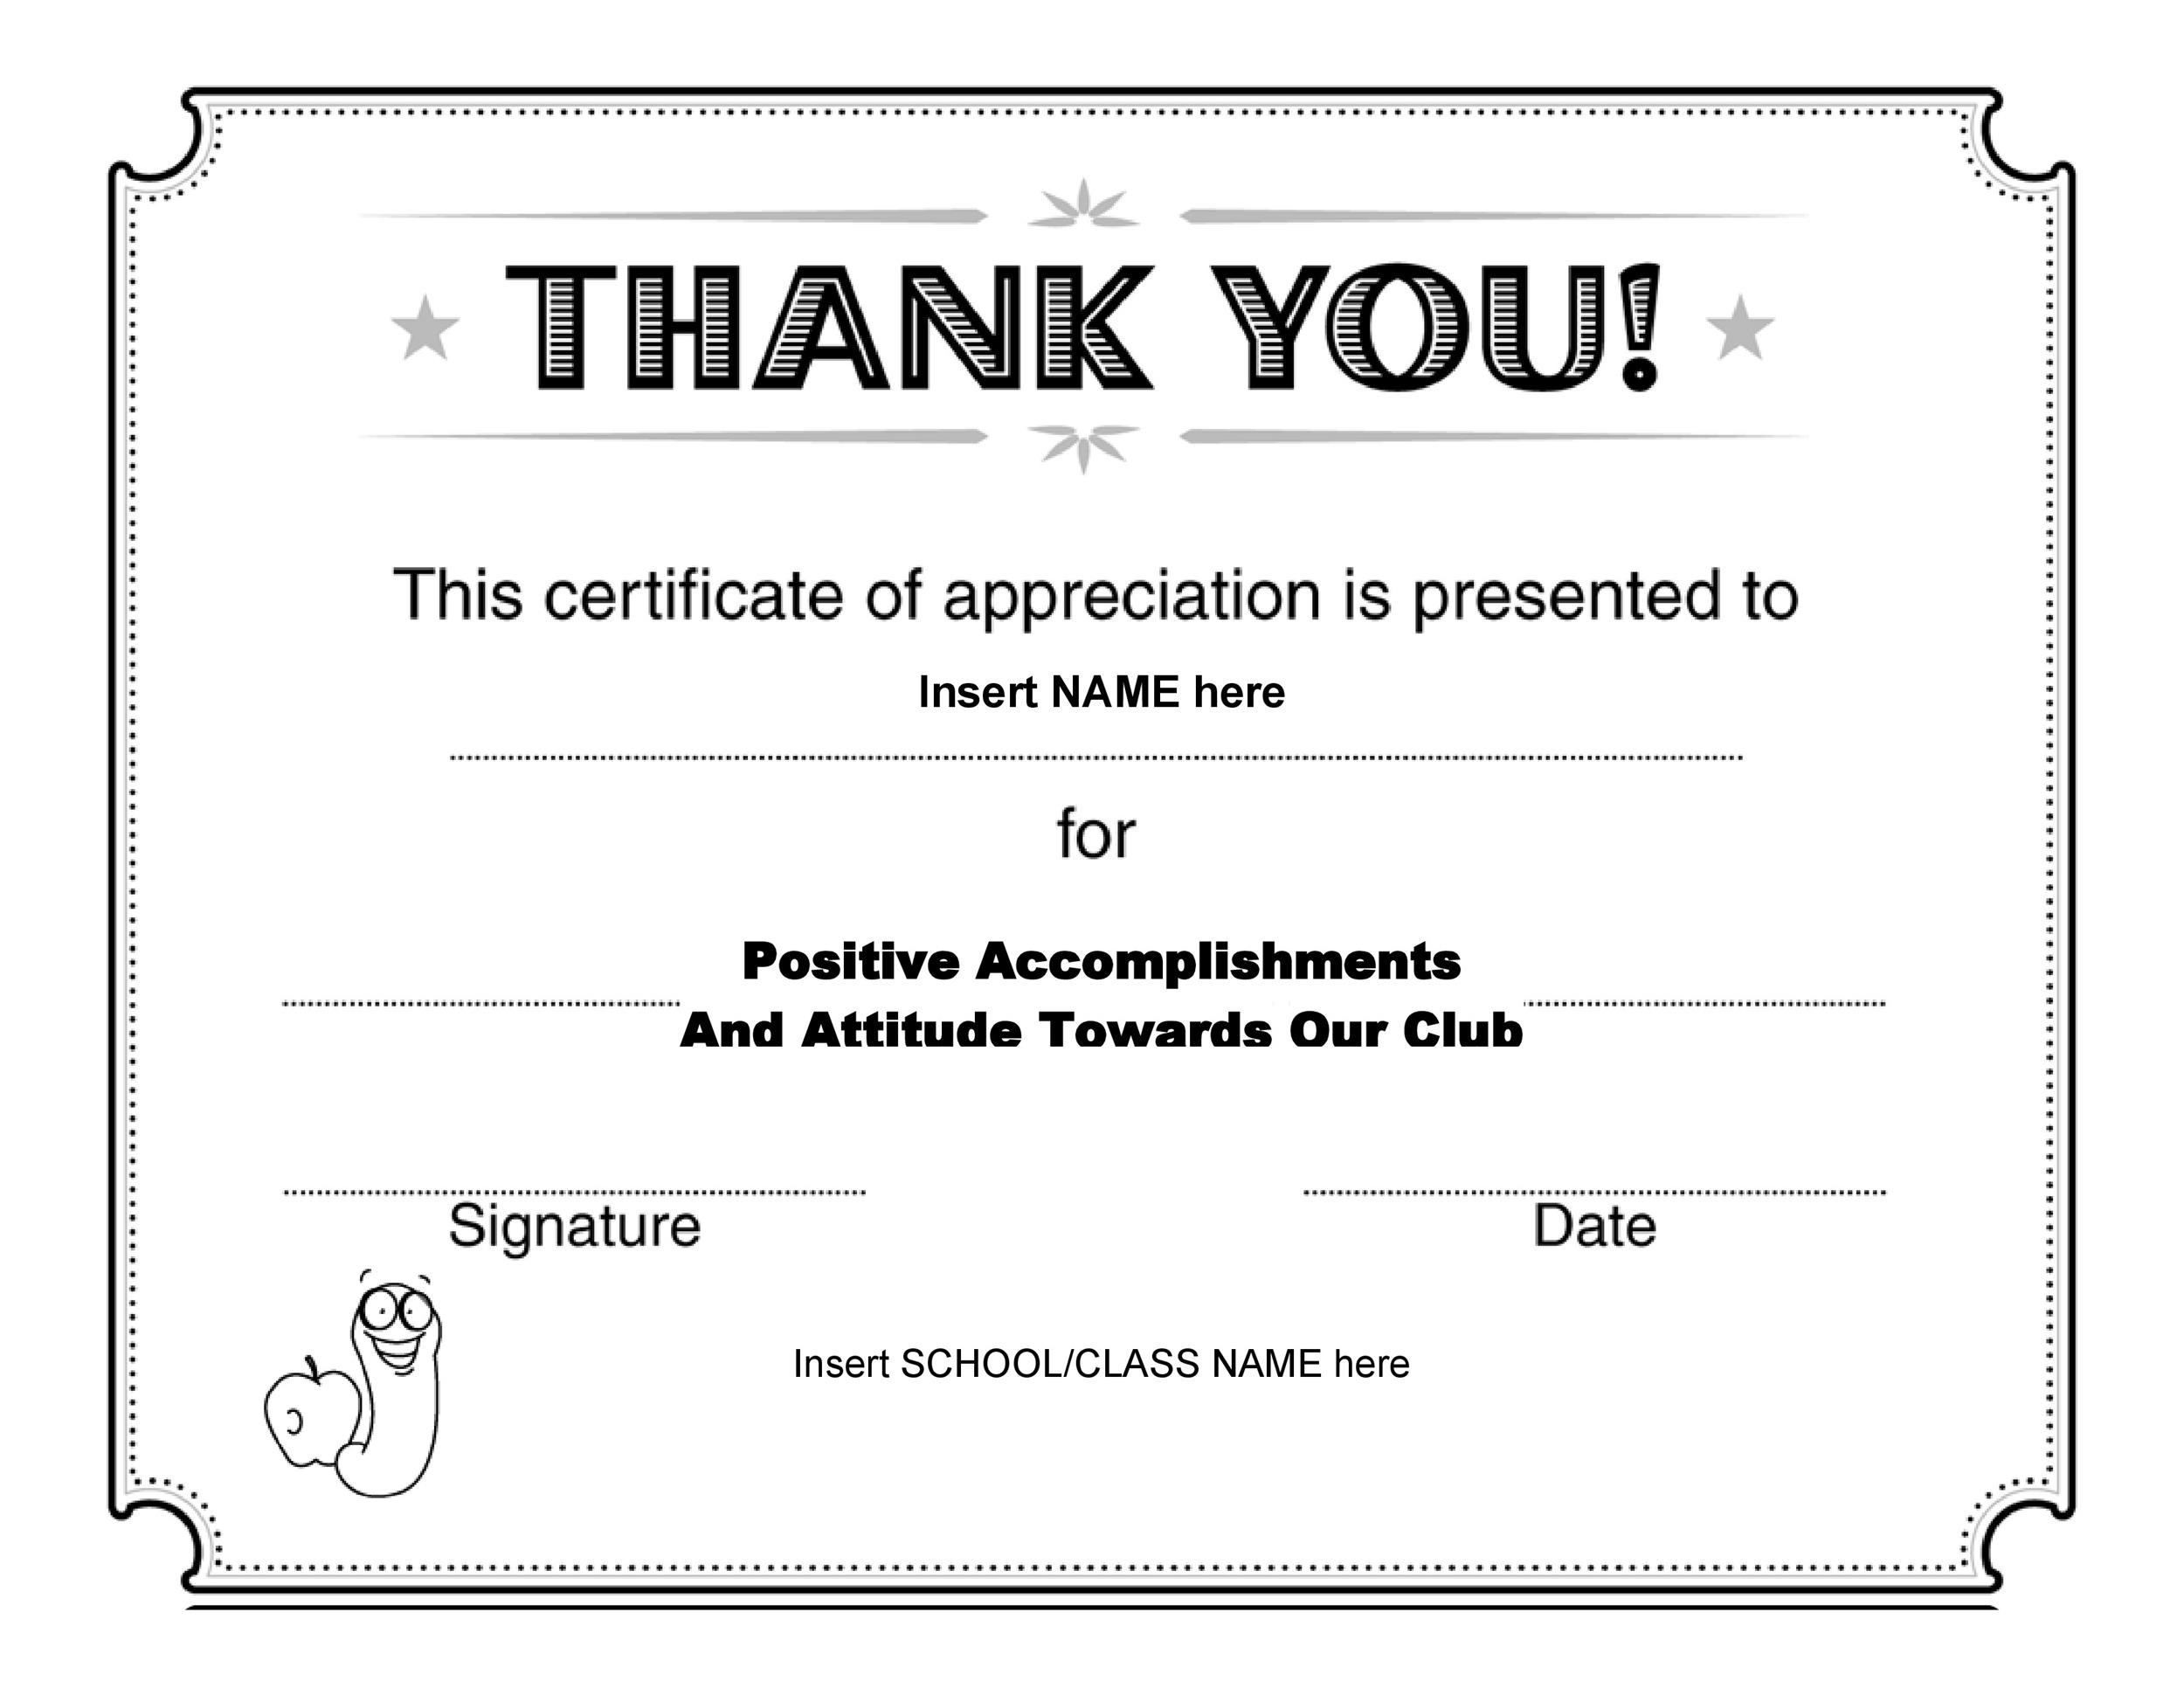 Superior Printable Certificate Of Appreciation 07 For Certificate Of Appreciation Word Template